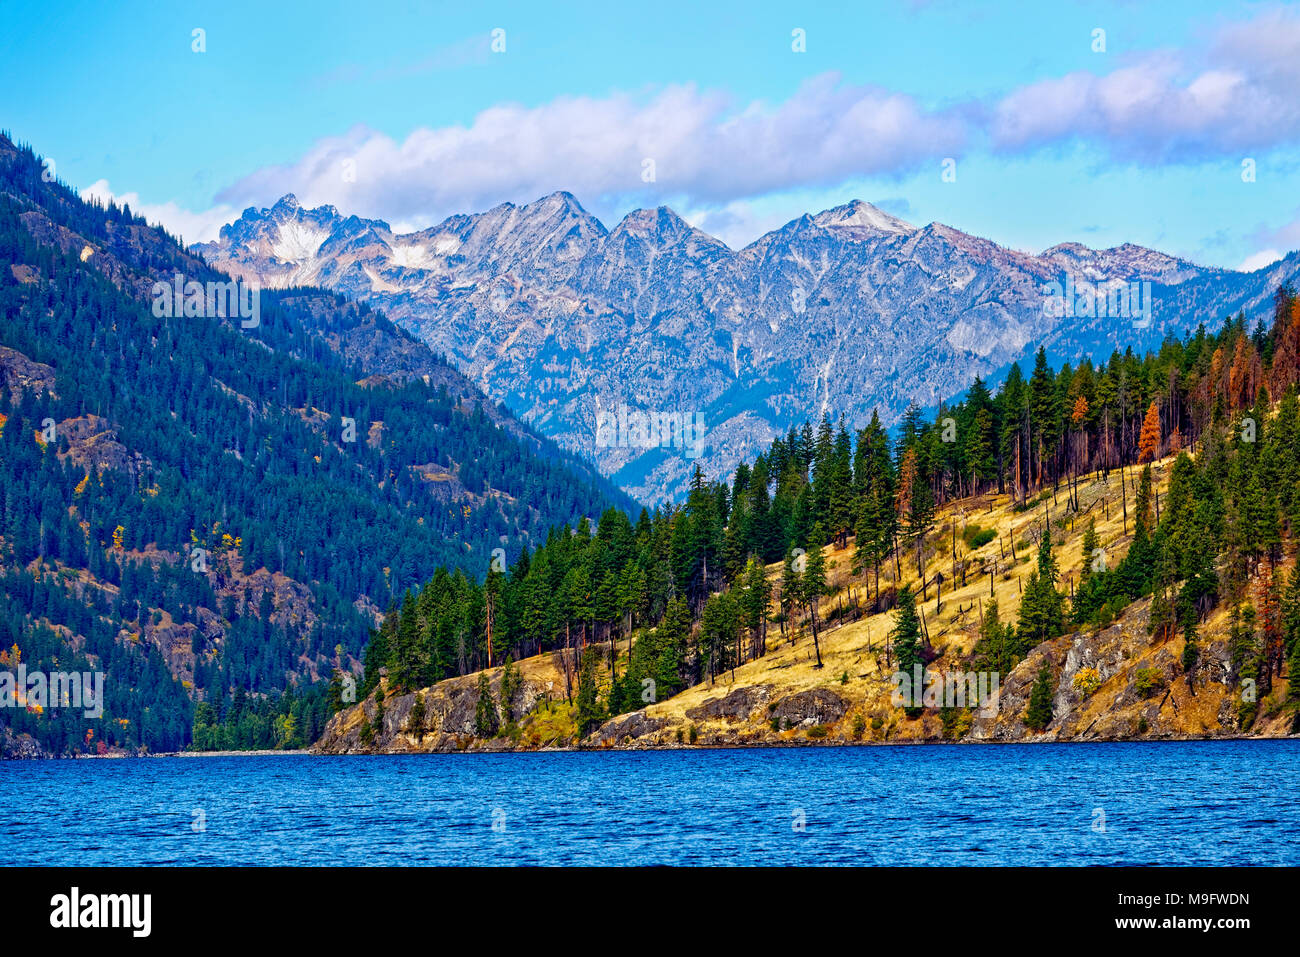 41,926.03552 dry mountains canyon, Lake Chelan, Rainbow Mountain, conifer forests - Stock Image